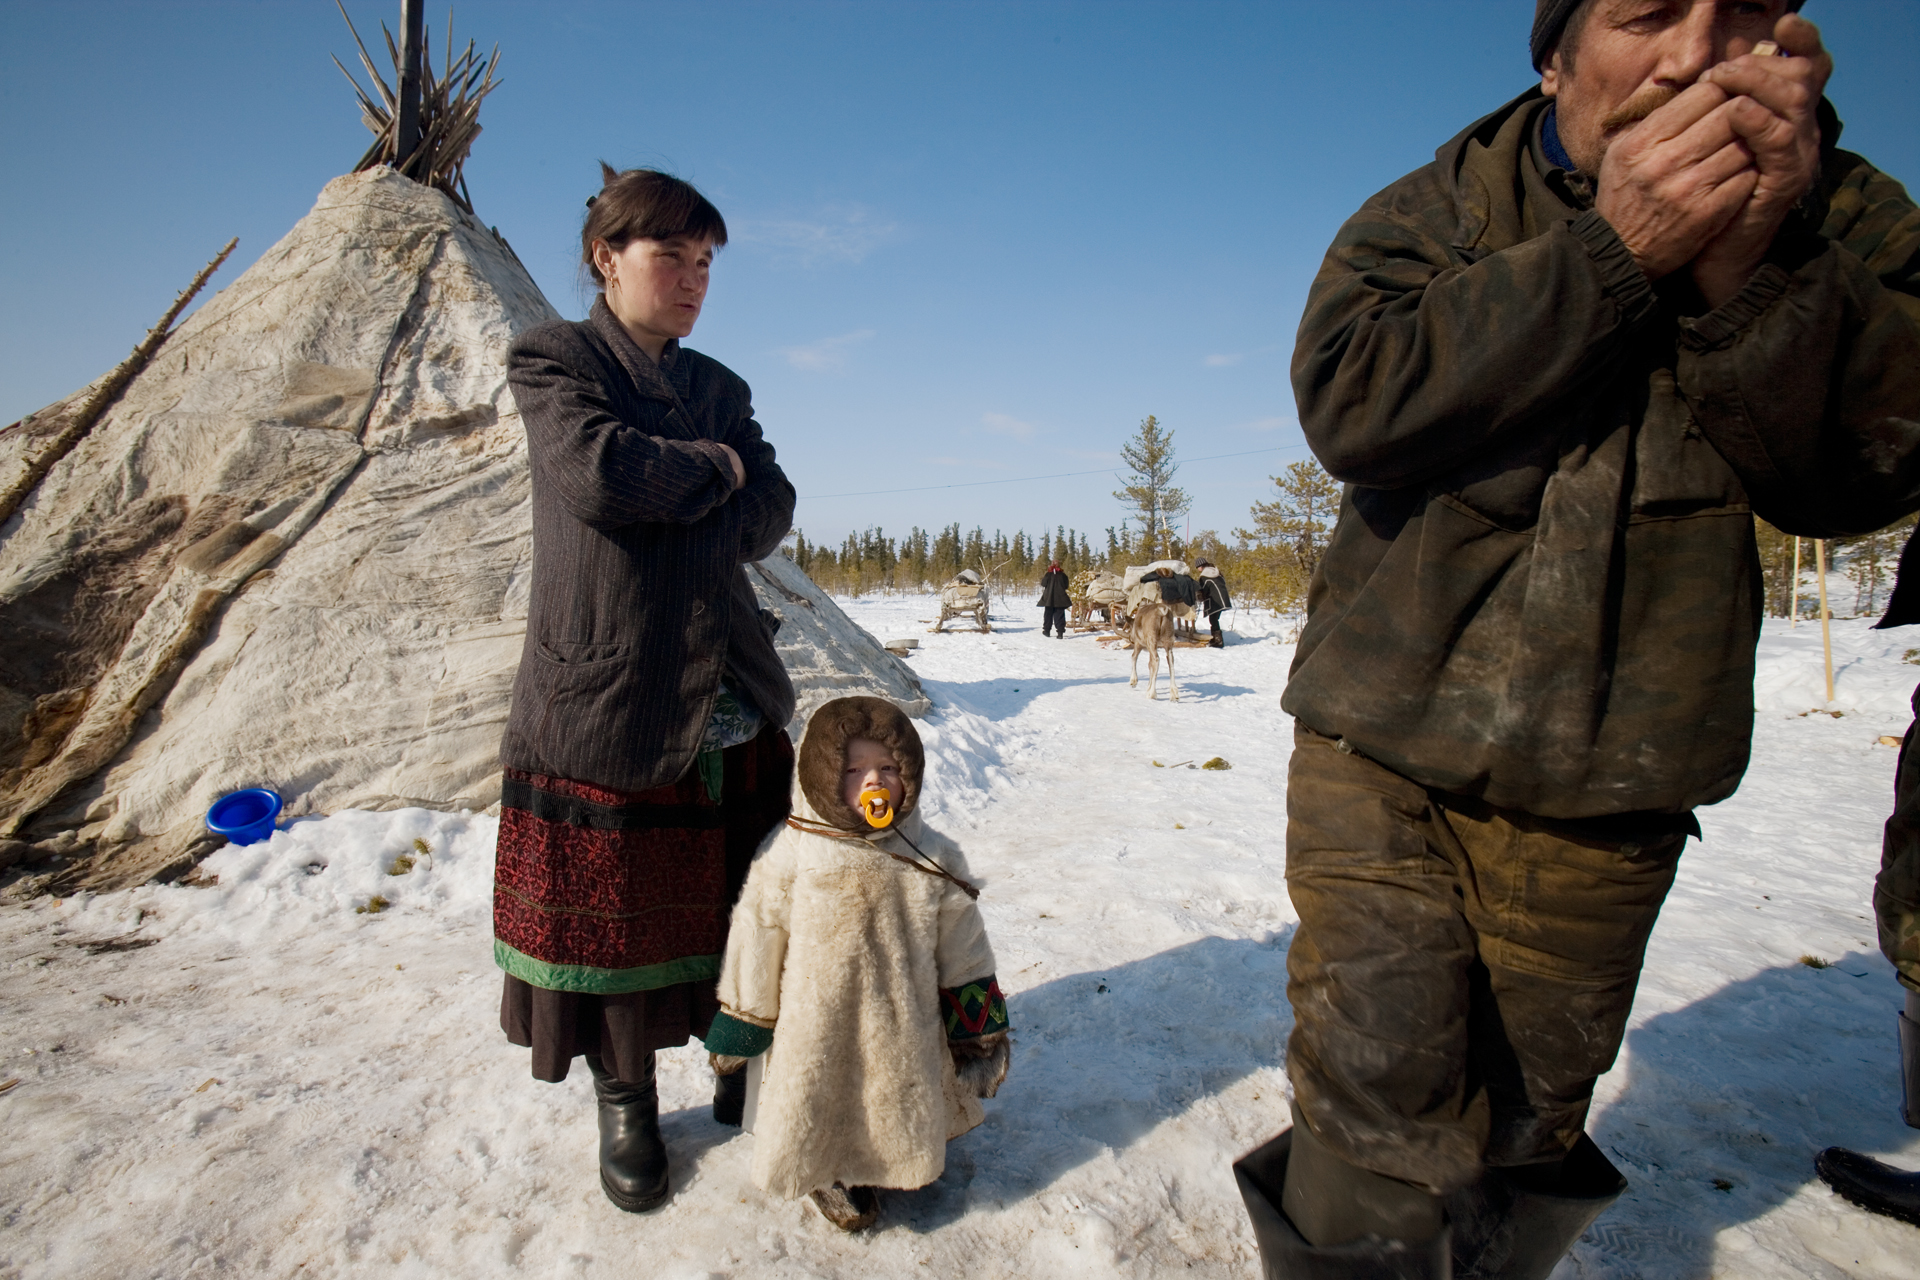 Traditional life for this young family of Nenets is being threatened by booming oil development in the Khanty-Mansiysk region.  Near Saranpaul, Russia